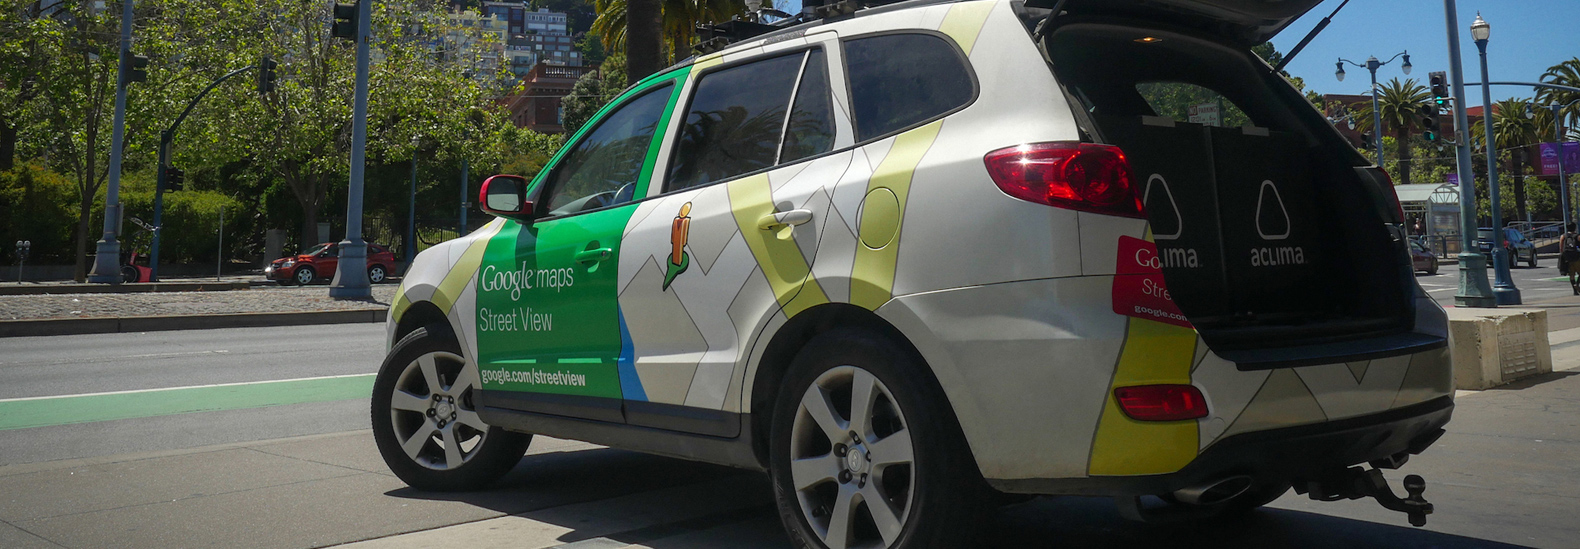 Google Street View Cars Will Map Air Pollution In Cities Worldwide